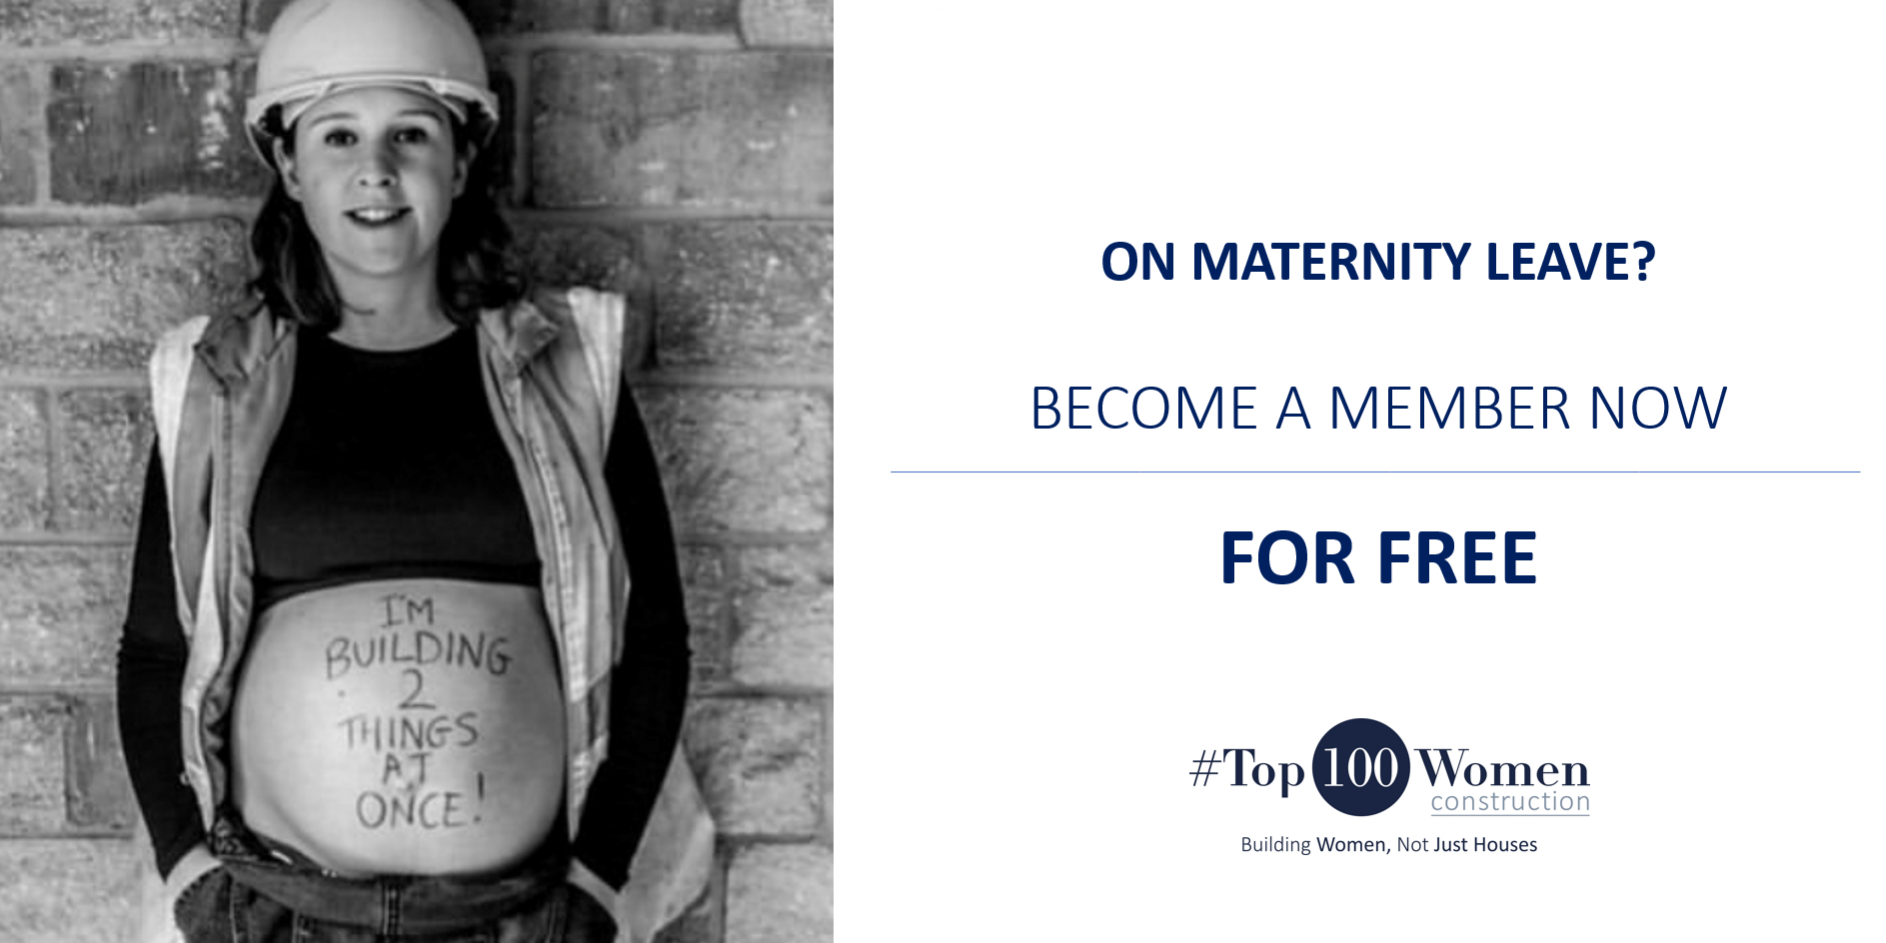 ON MATERNITY LEAVE? BECOME A MEMBER NOW FOR FREE